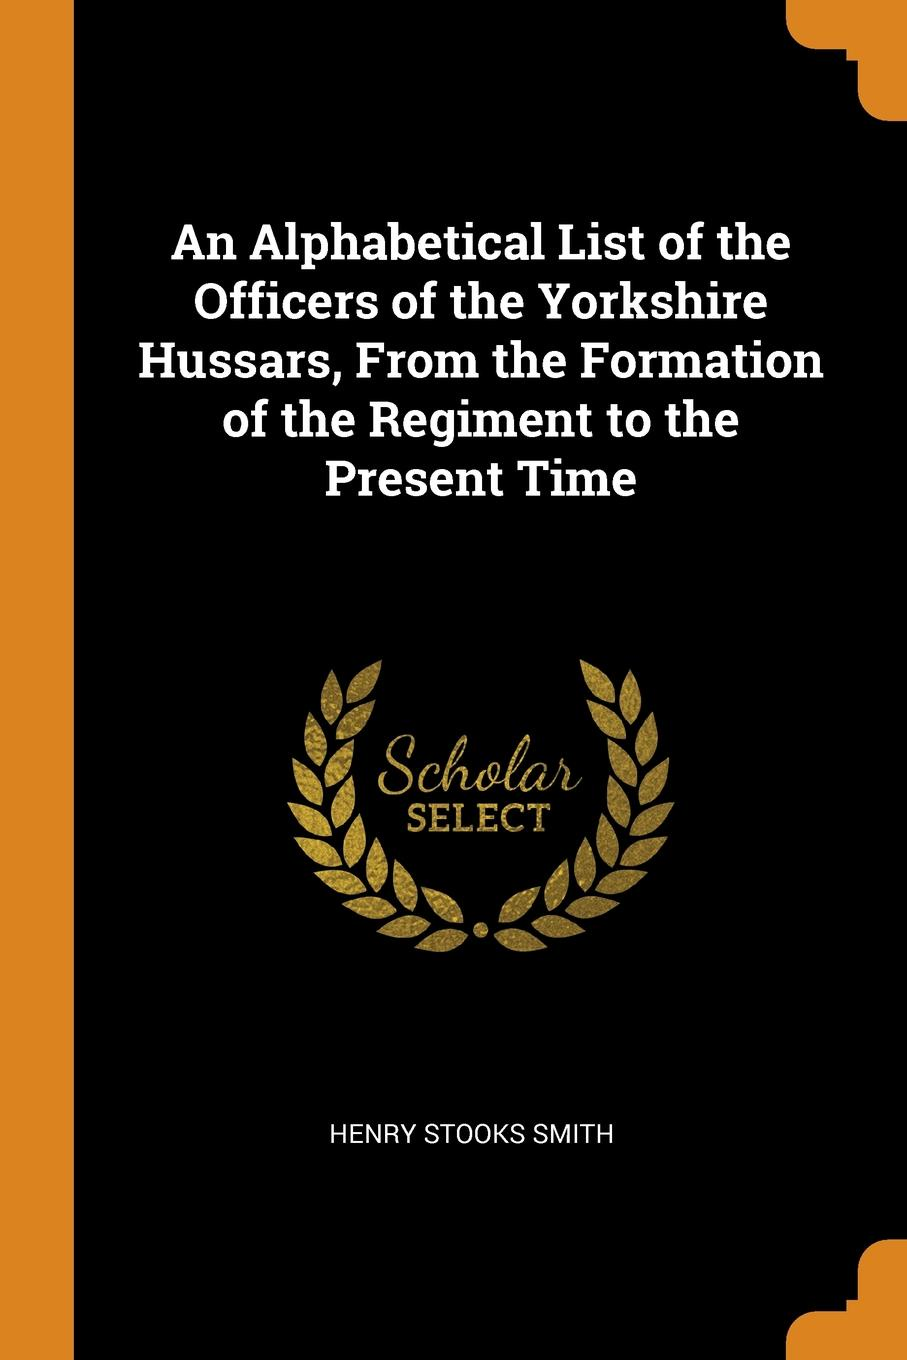 An Alphabetical List of the Officers of the Yorkshire Hussars, From the Formation of the Regiment to the Present Time. Henry Stooks Smith